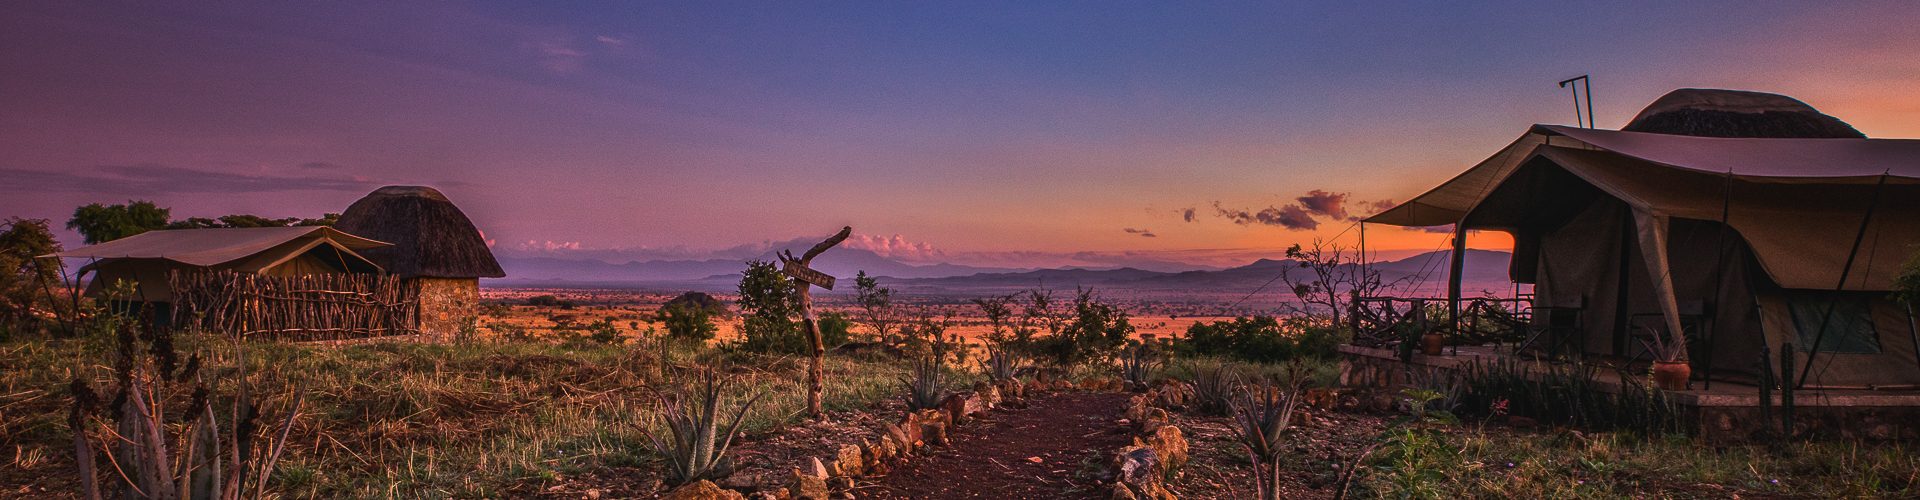 Travel Resources to plan your trip abroad, like this eco-camp in Uganda